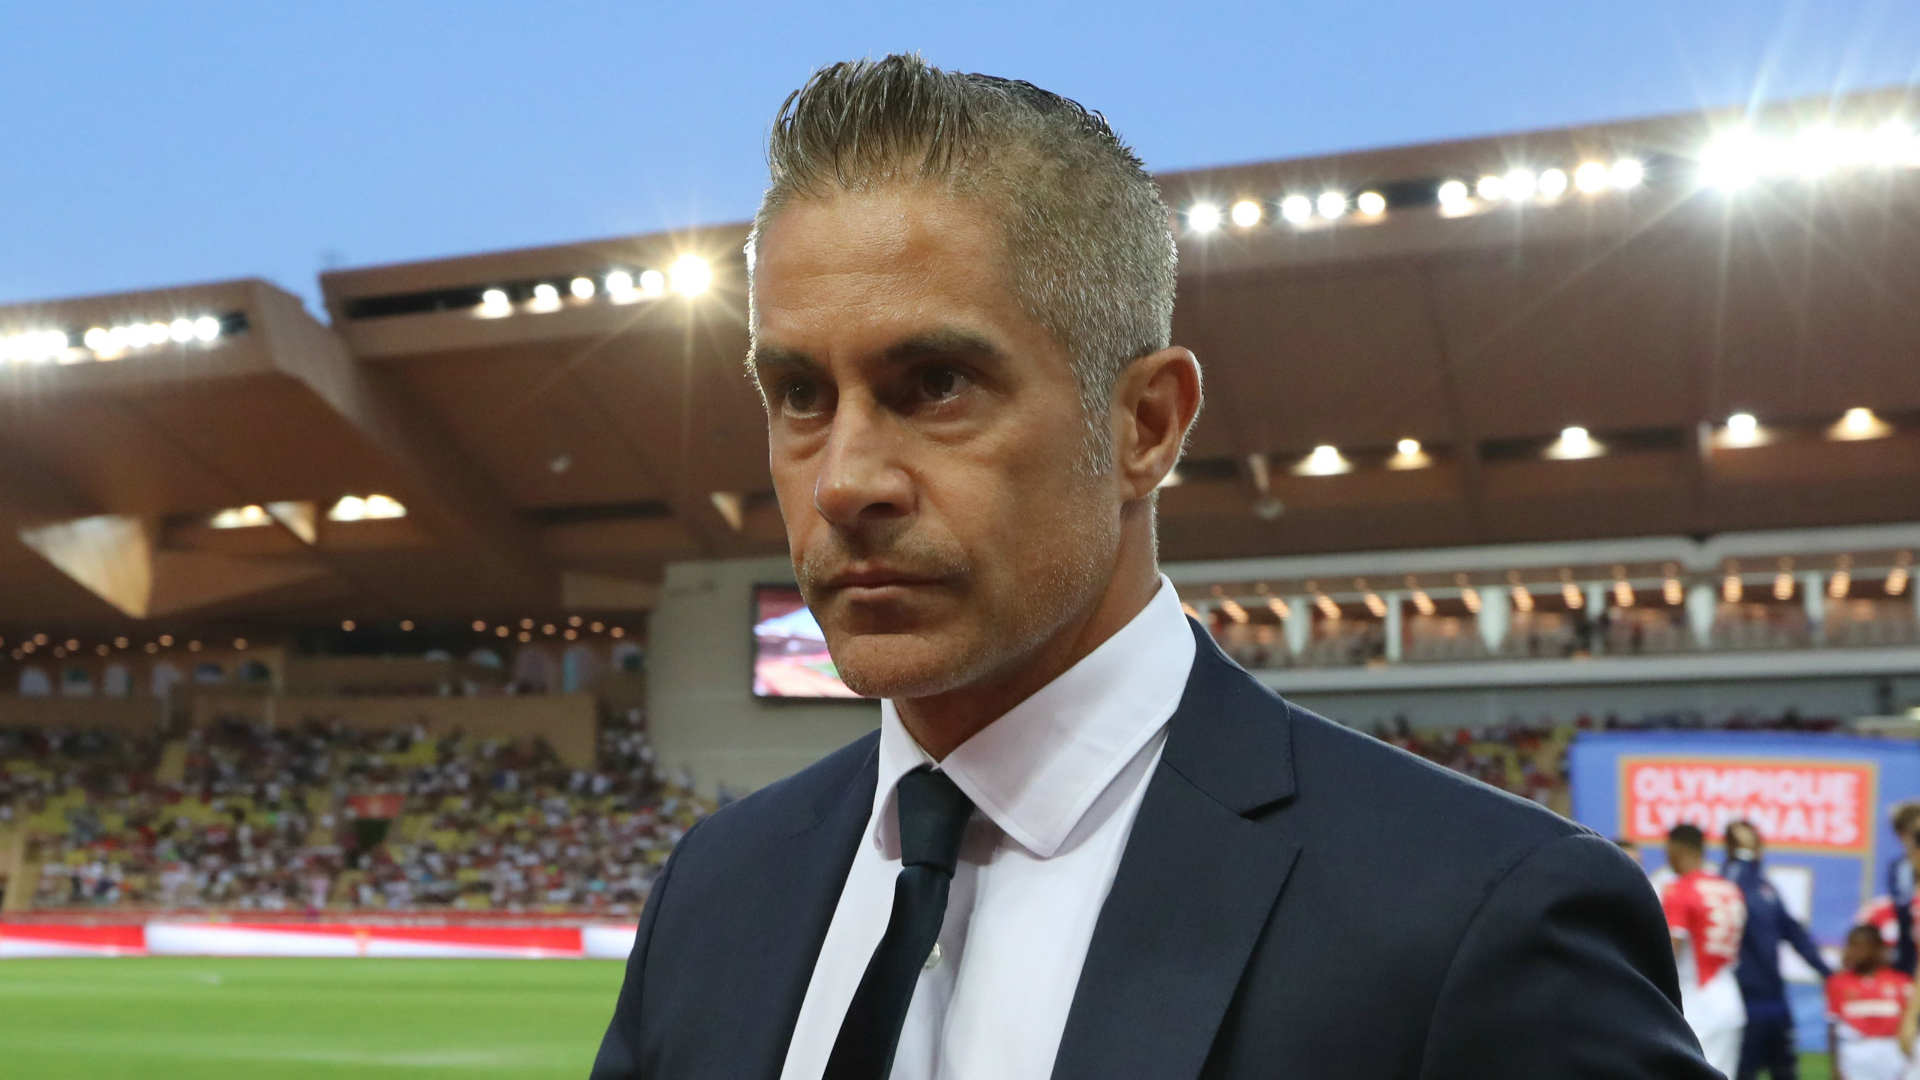 Lyon refute payout reports after finalising Sylvinho compensation